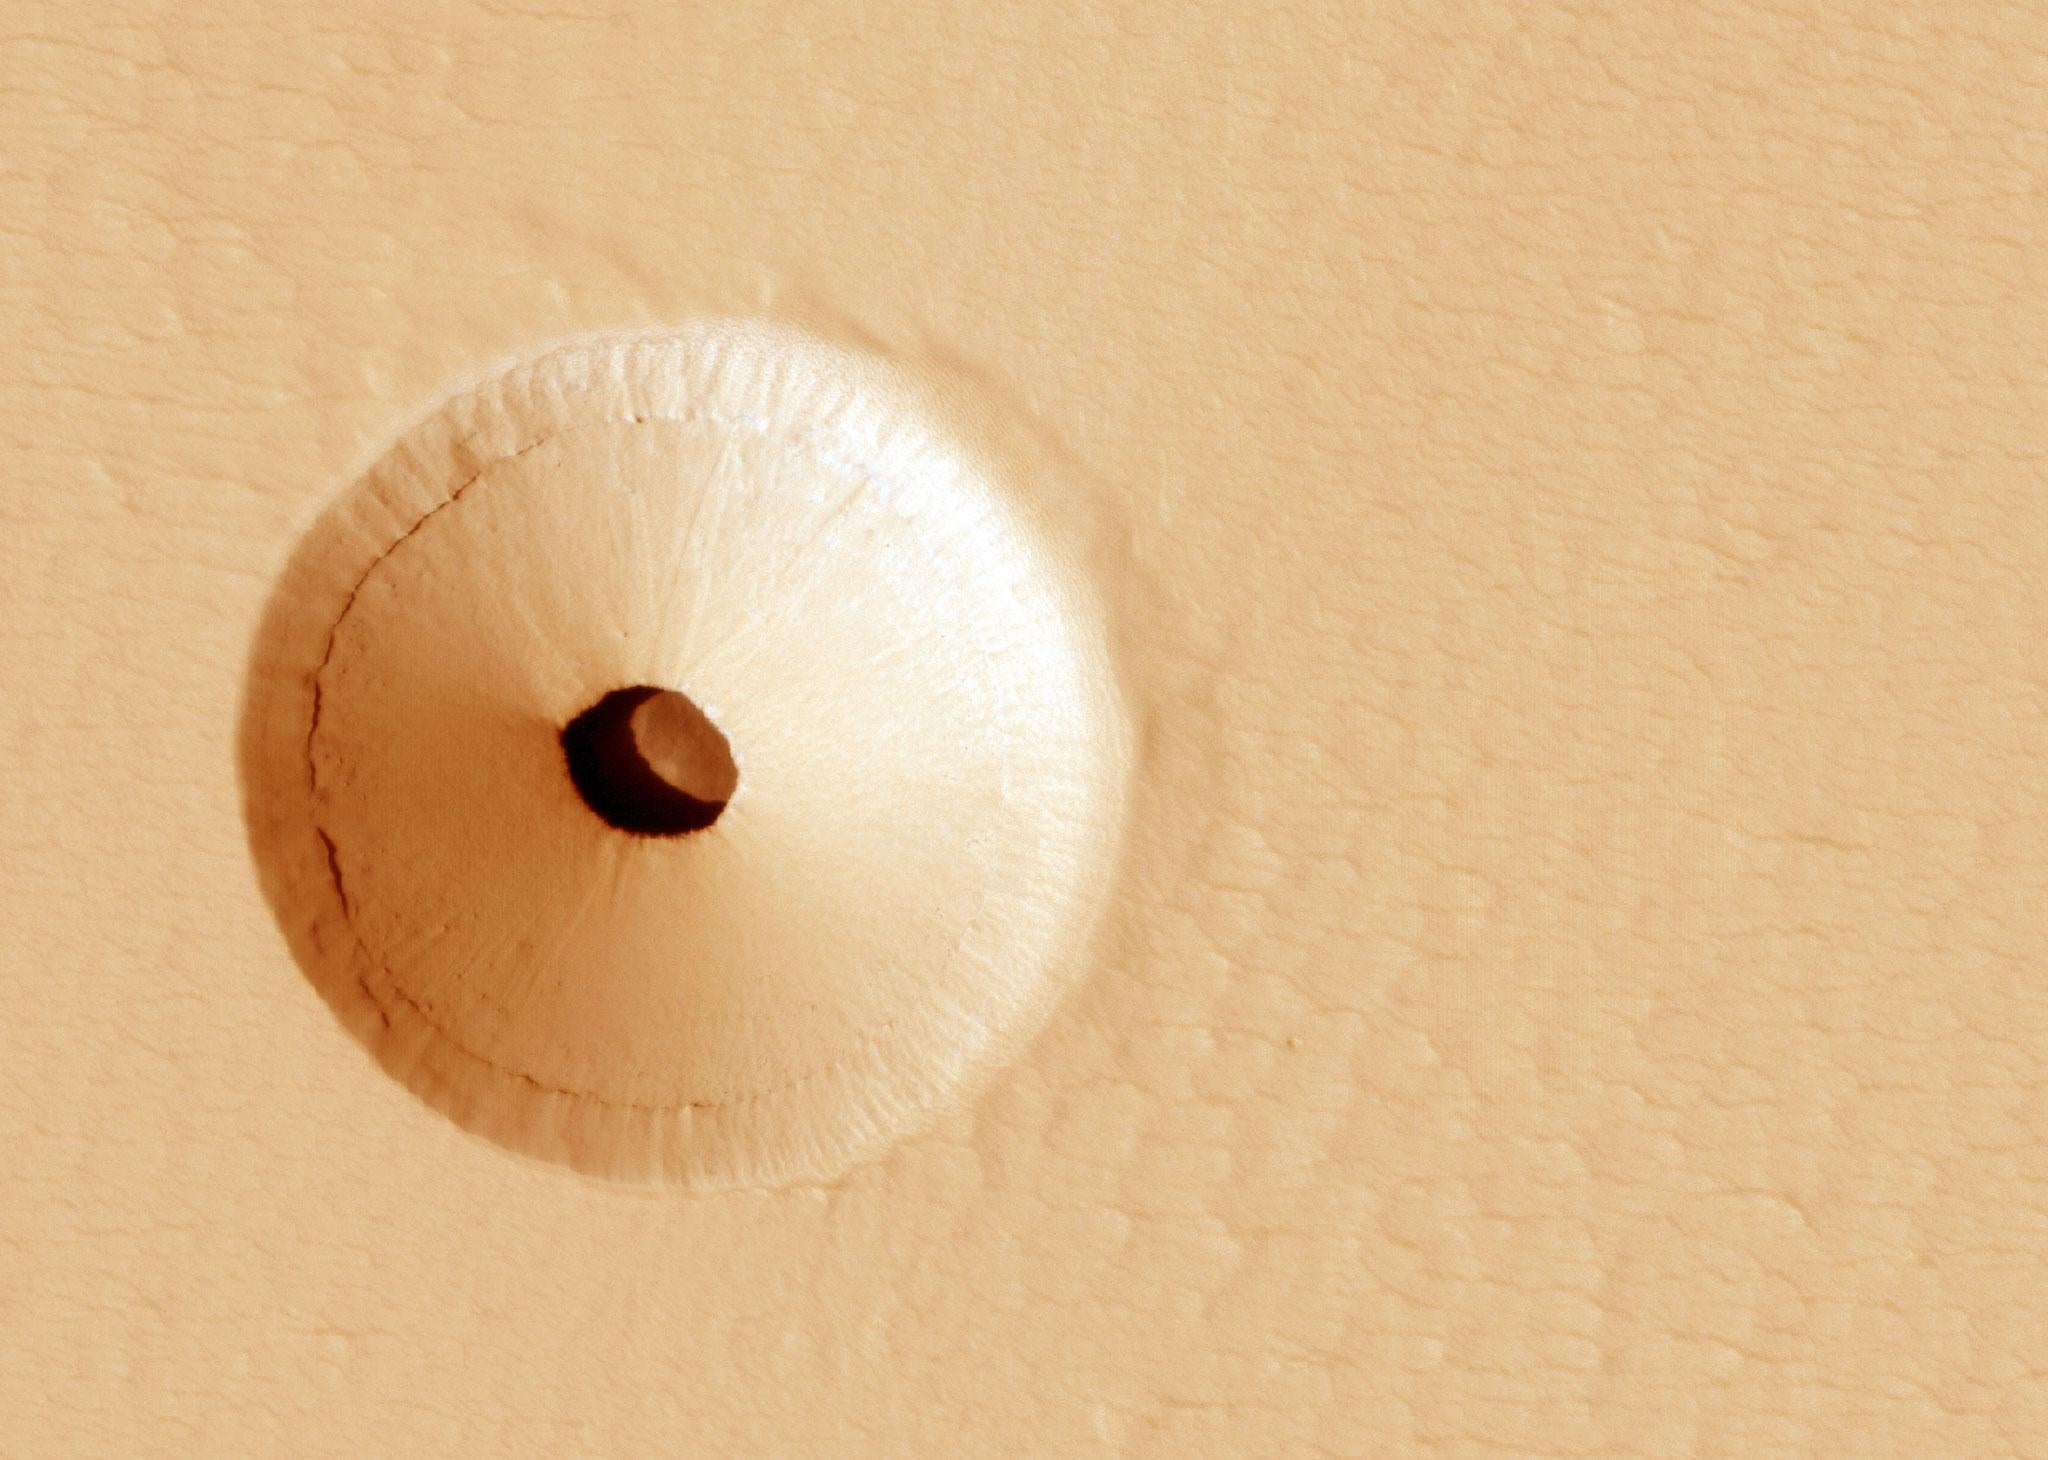 Nasa shares picture of unusual hole in Mars that could 'contain Martian life'